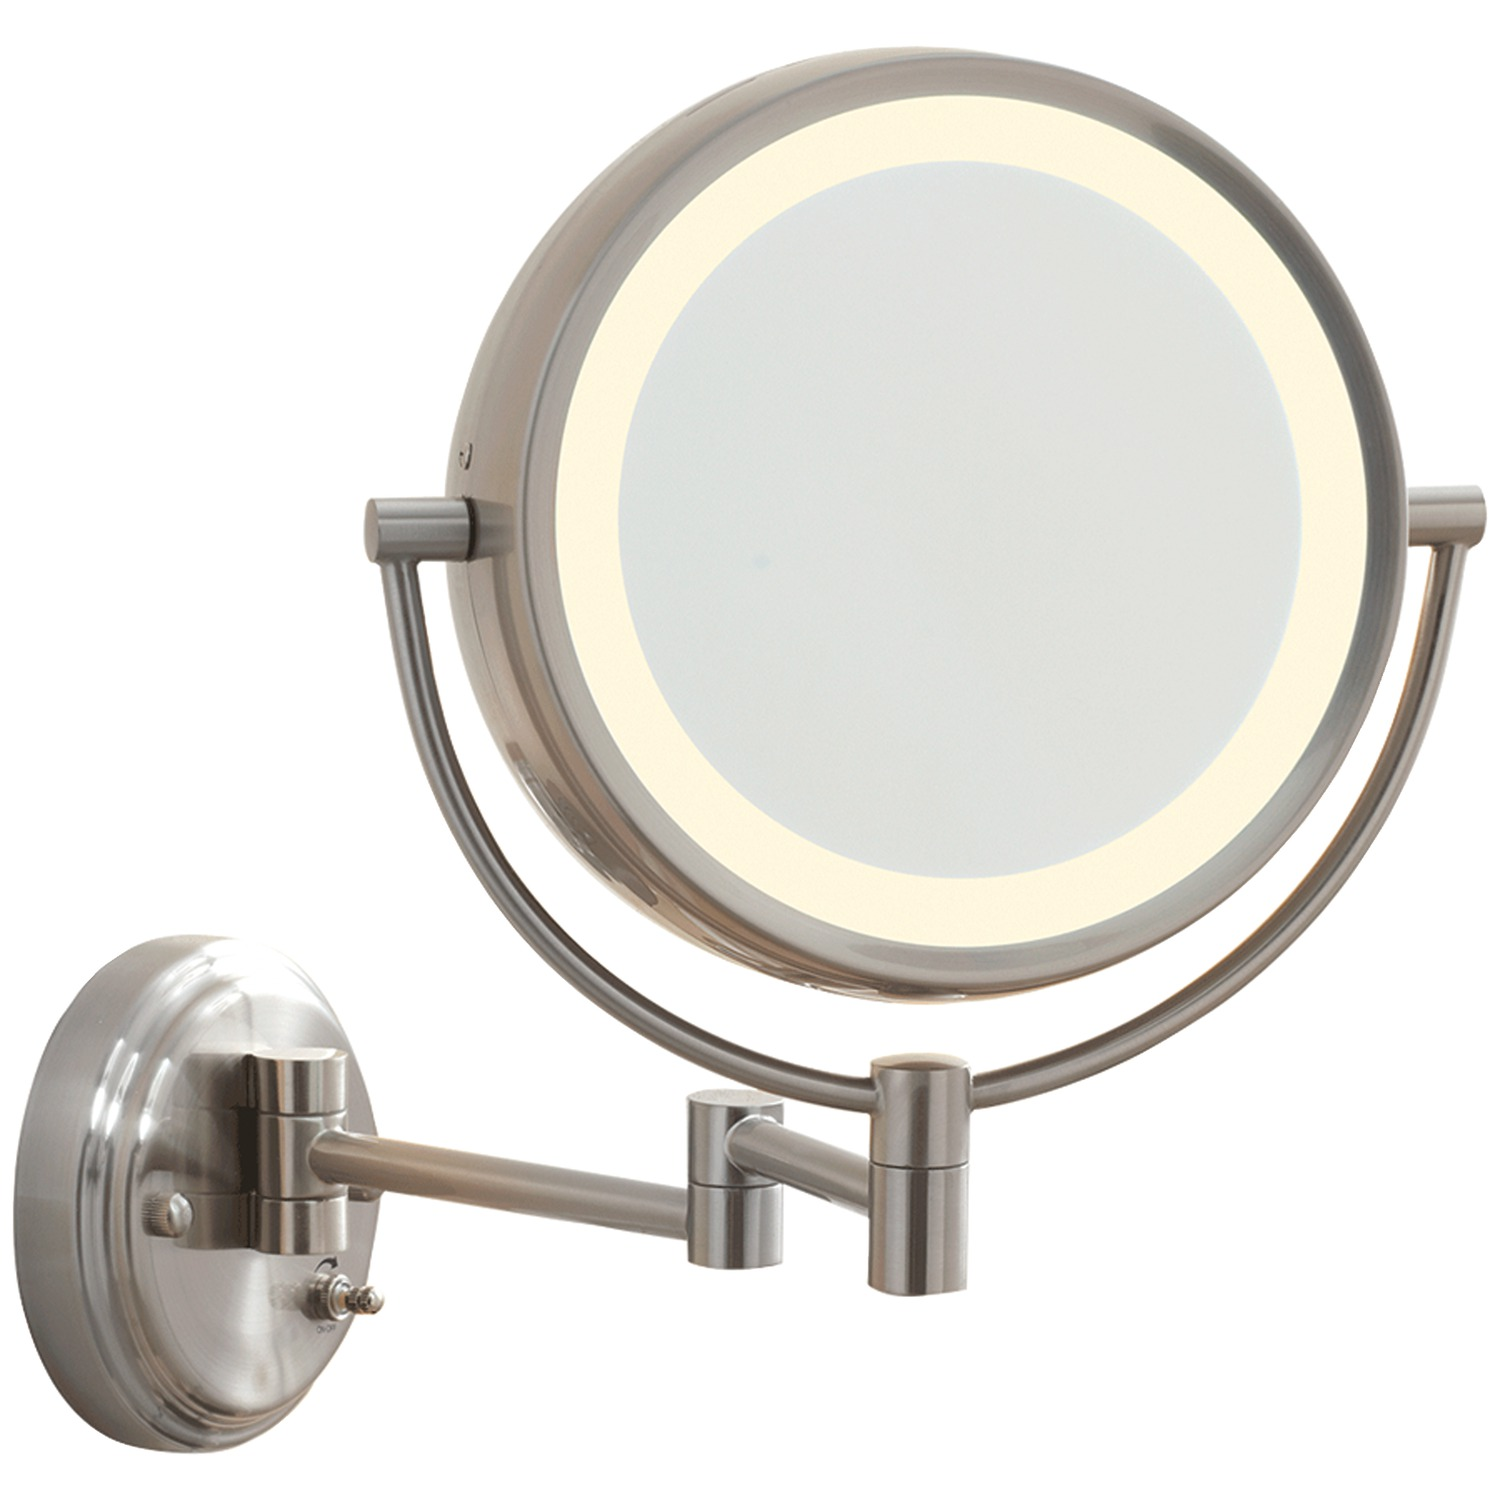 Conair Be6wmx Fluorescent Satin Nickel Wall-mount Mirror